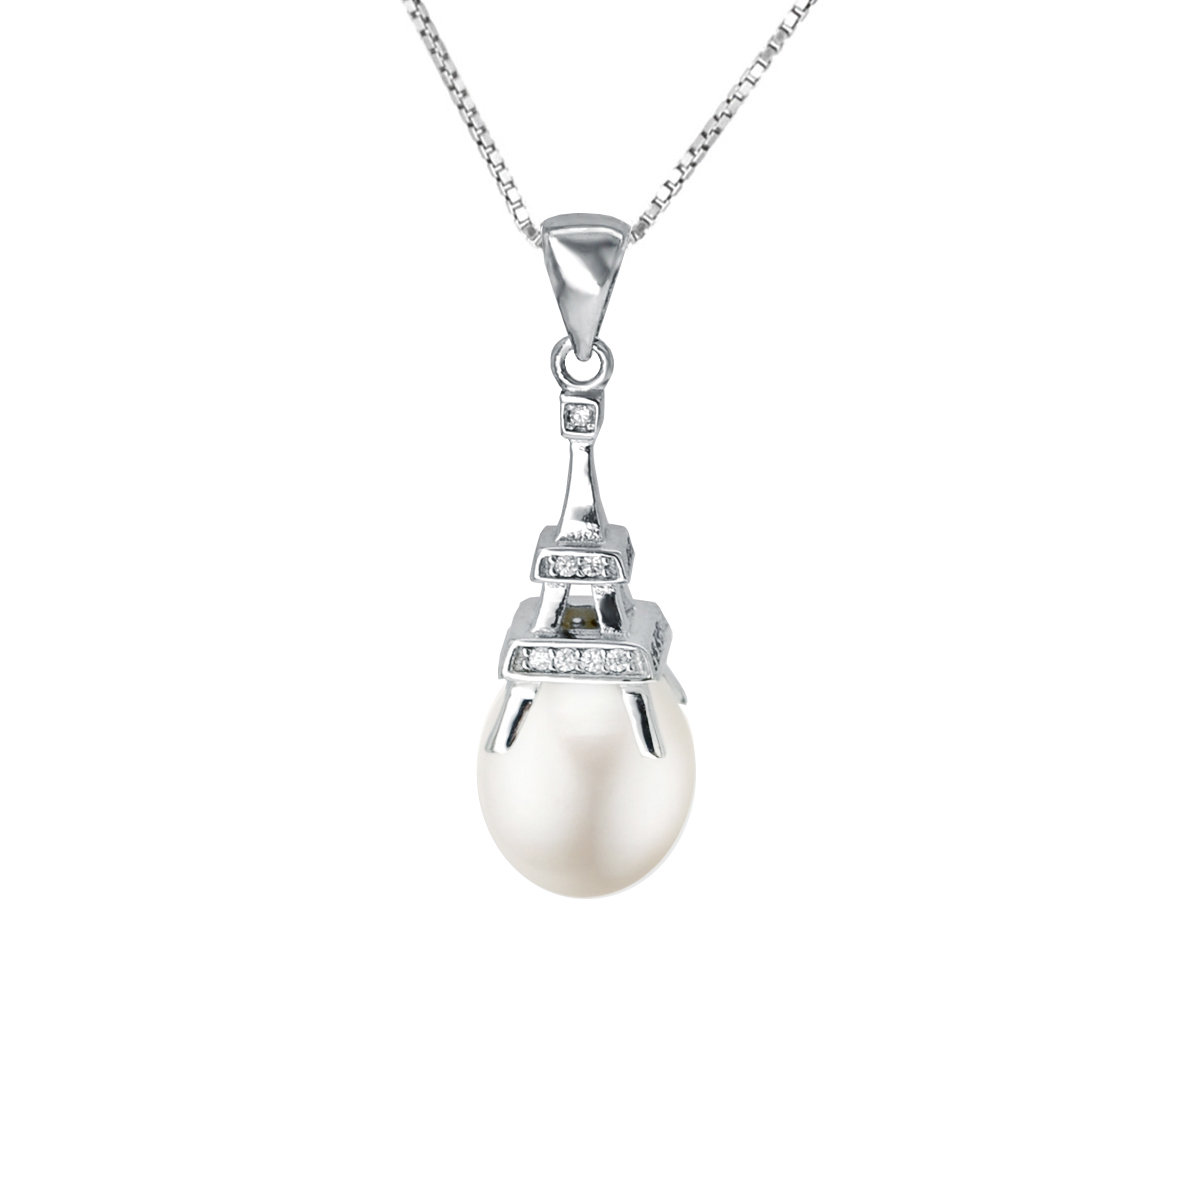 La Tour Eiffel- Cultured fresh water pearl with 925 silver pendant